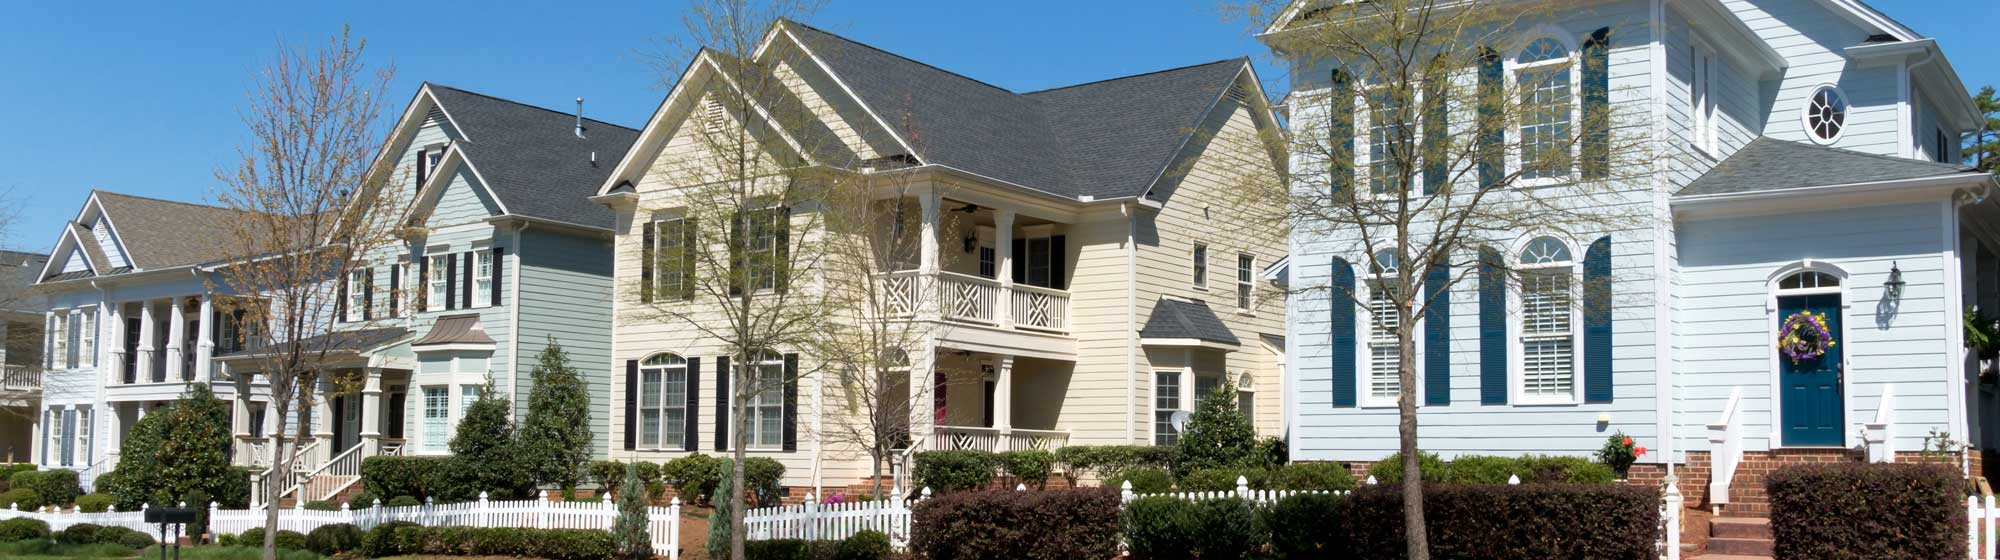 Germantown Property Management